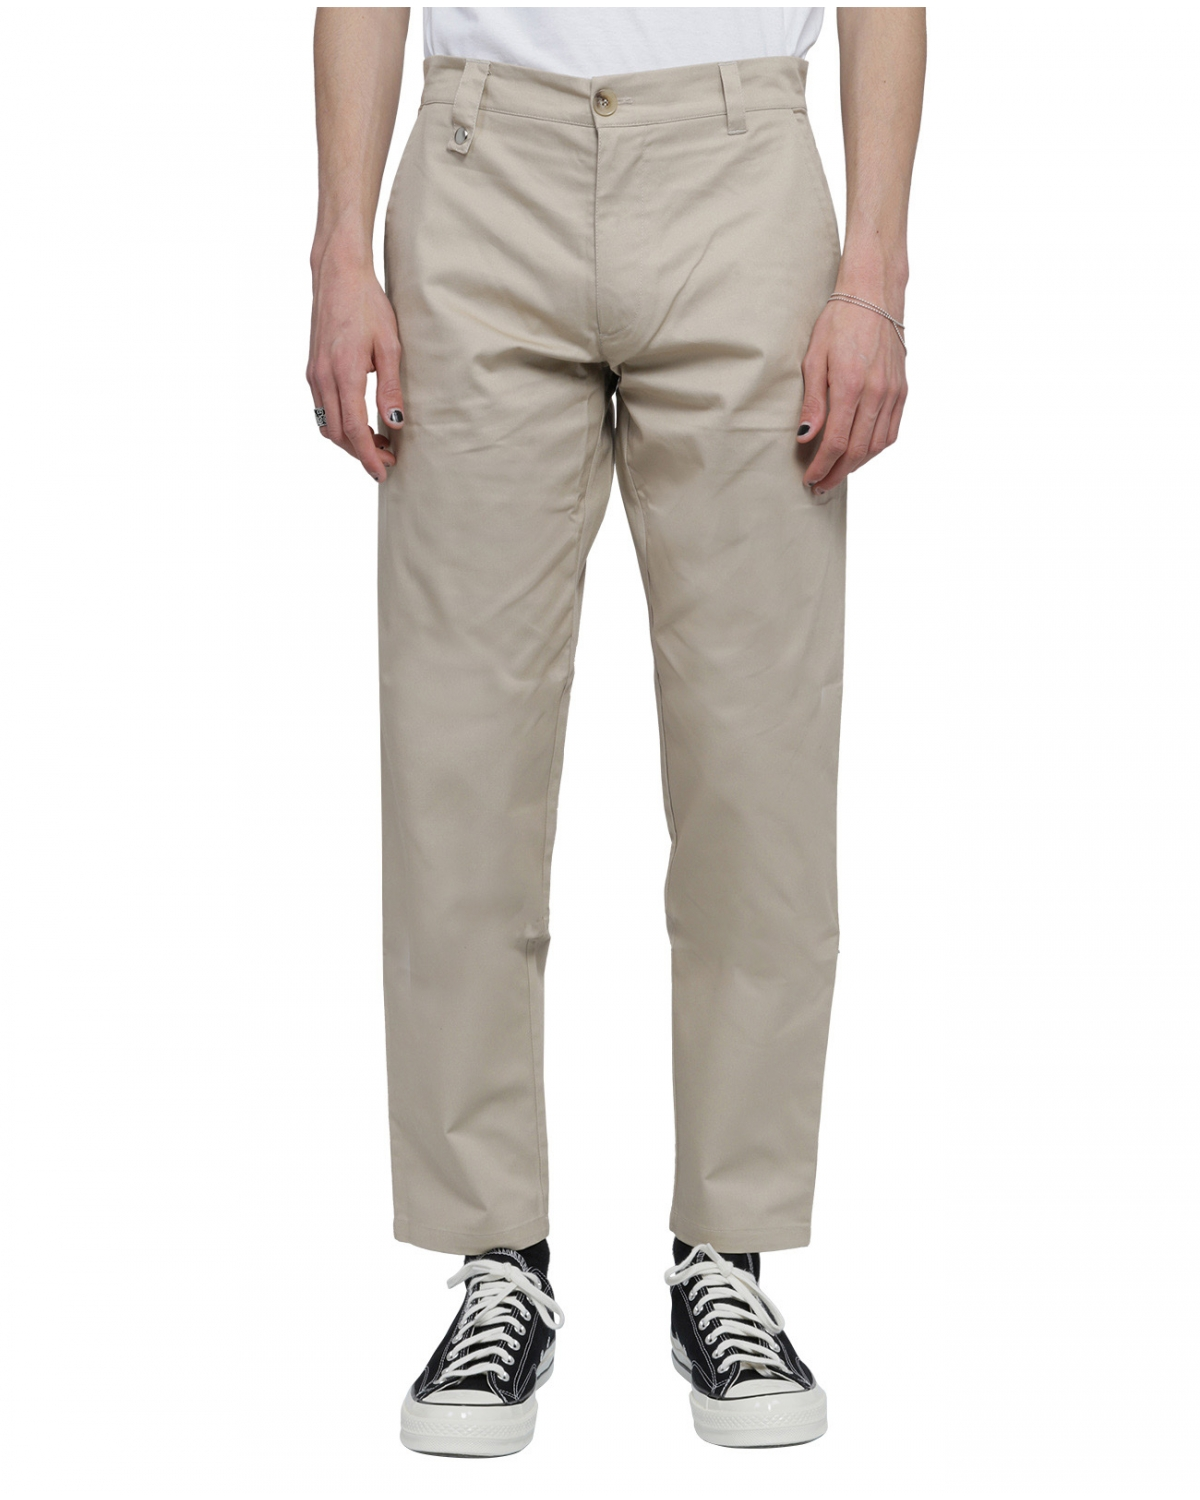 Silted beige Lobos trousers